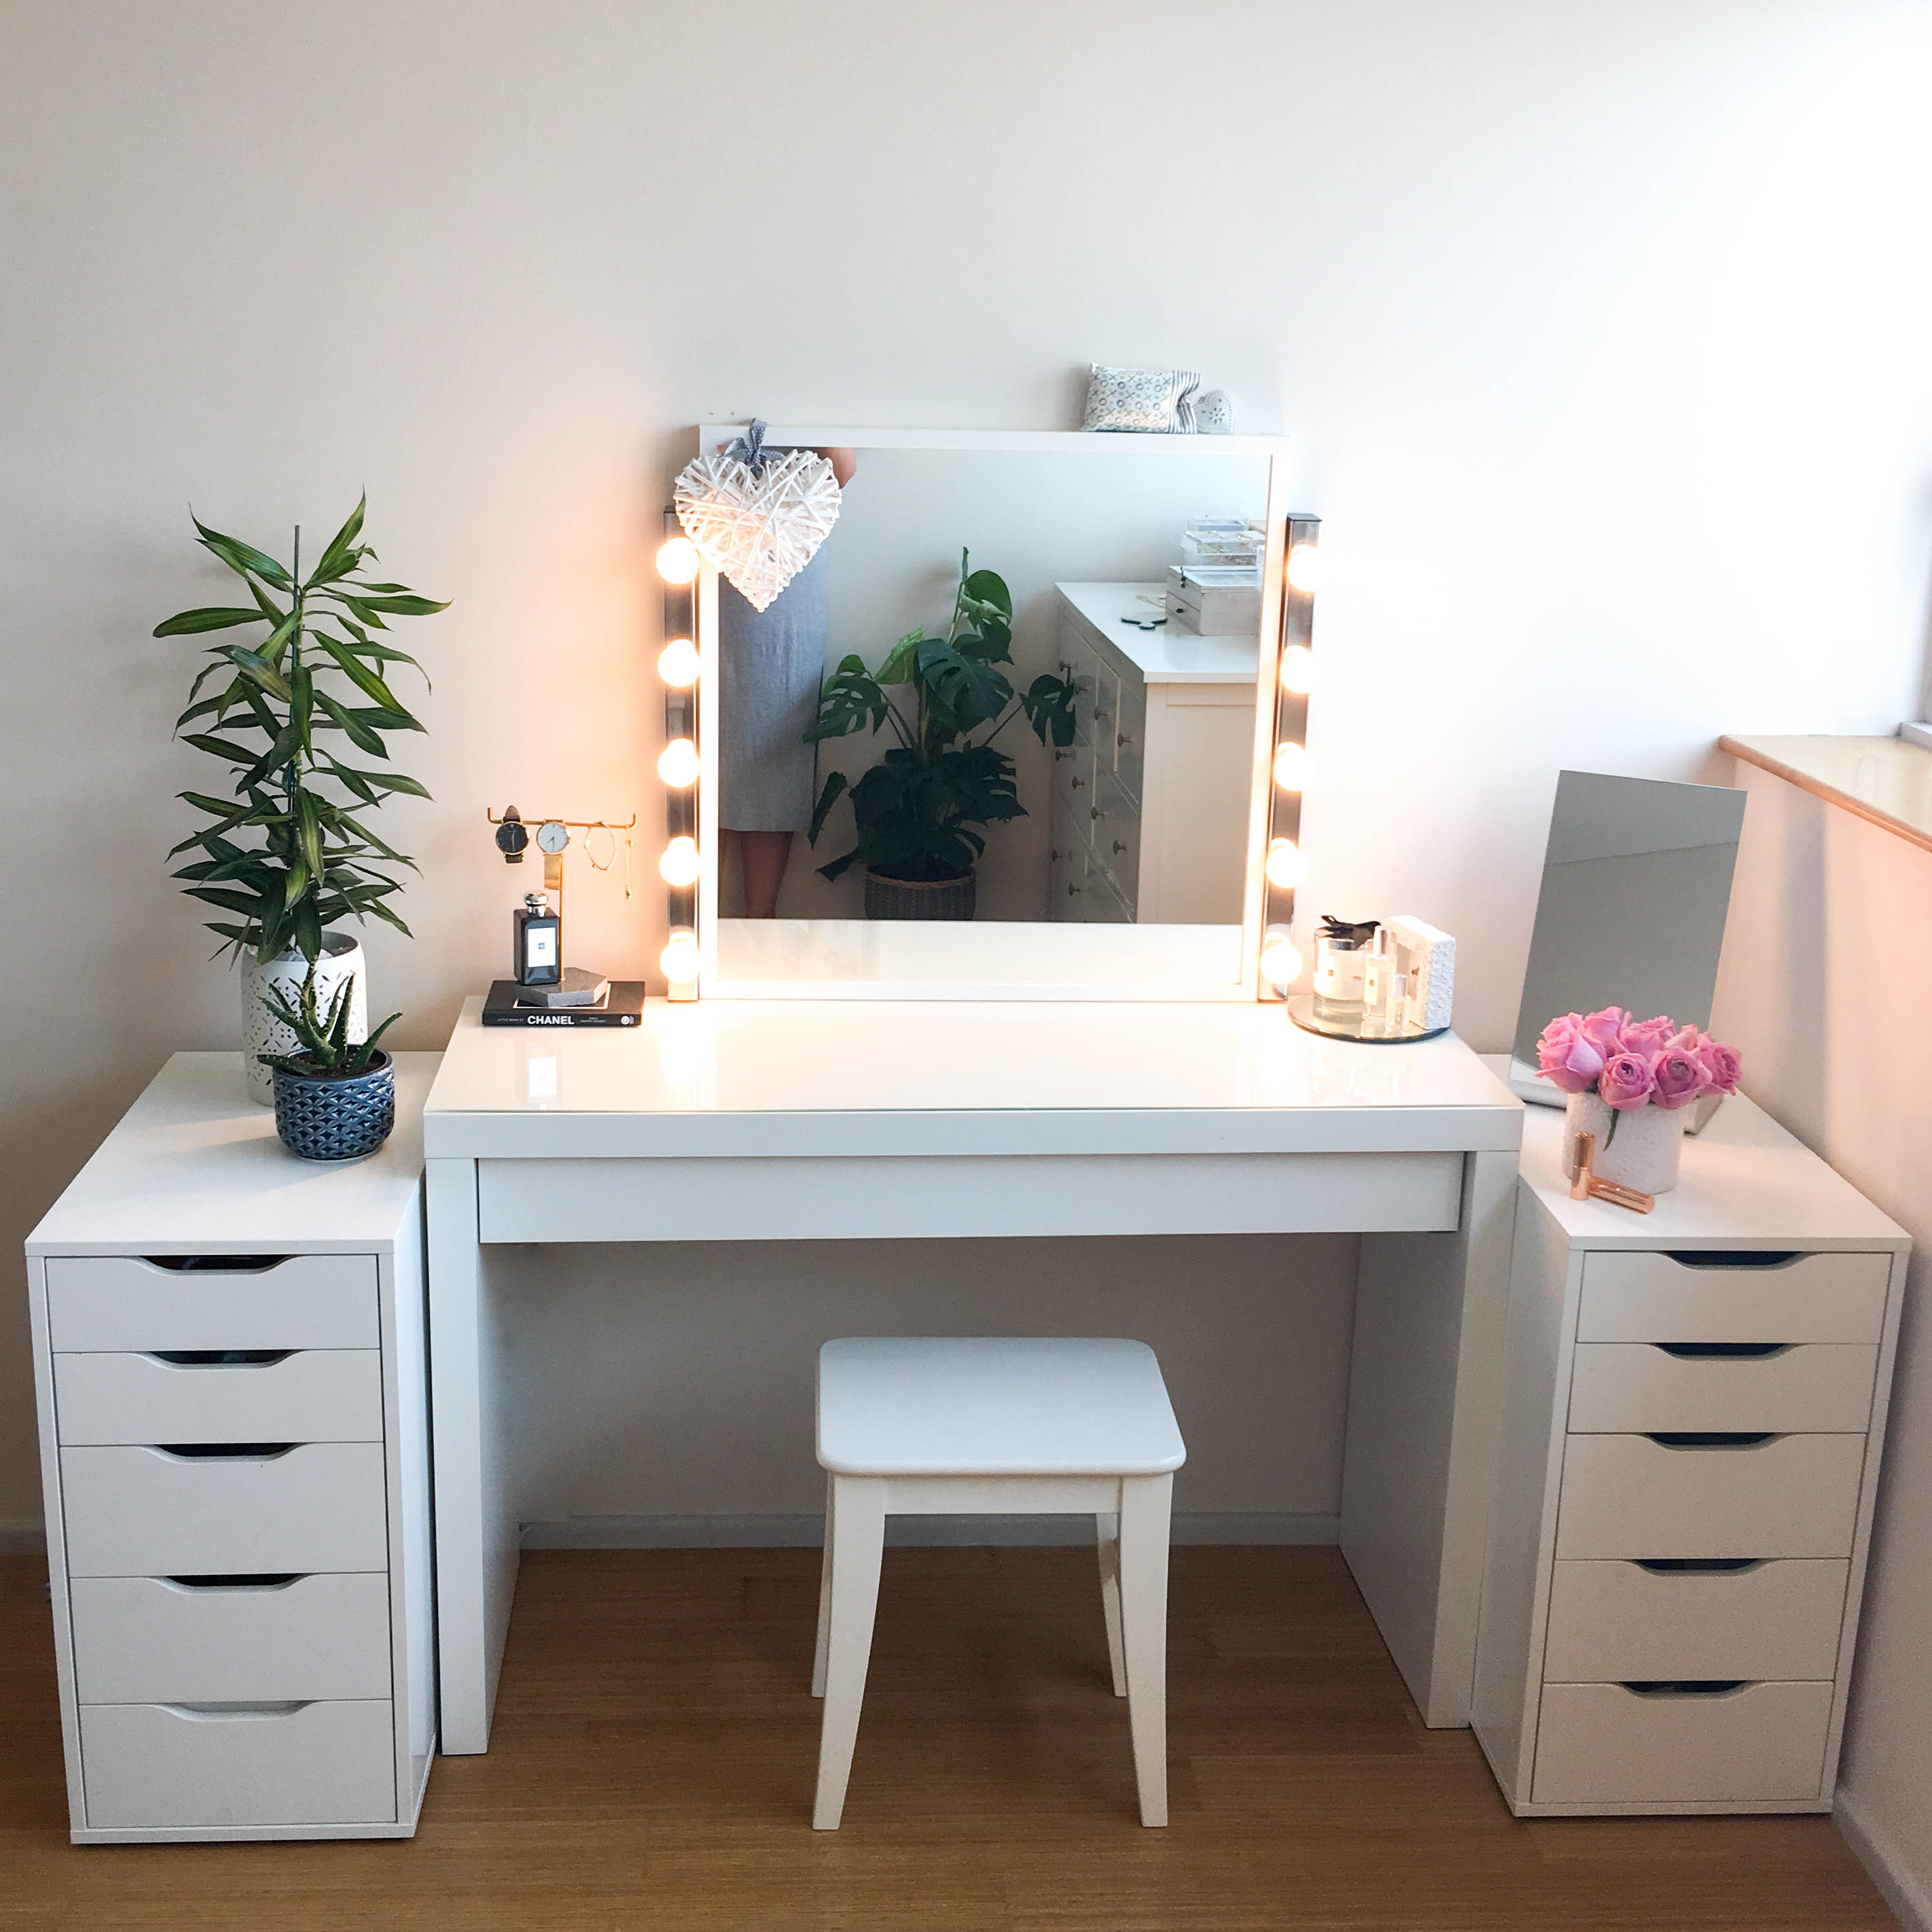 Superior Being A Fan Of Makeup And Cosmetics For As Long As I Can Remember, I Always  Longed To Have The Perfect Dressing Table And U0027vanity Mirroru0027 U2013 The Ones  That ...